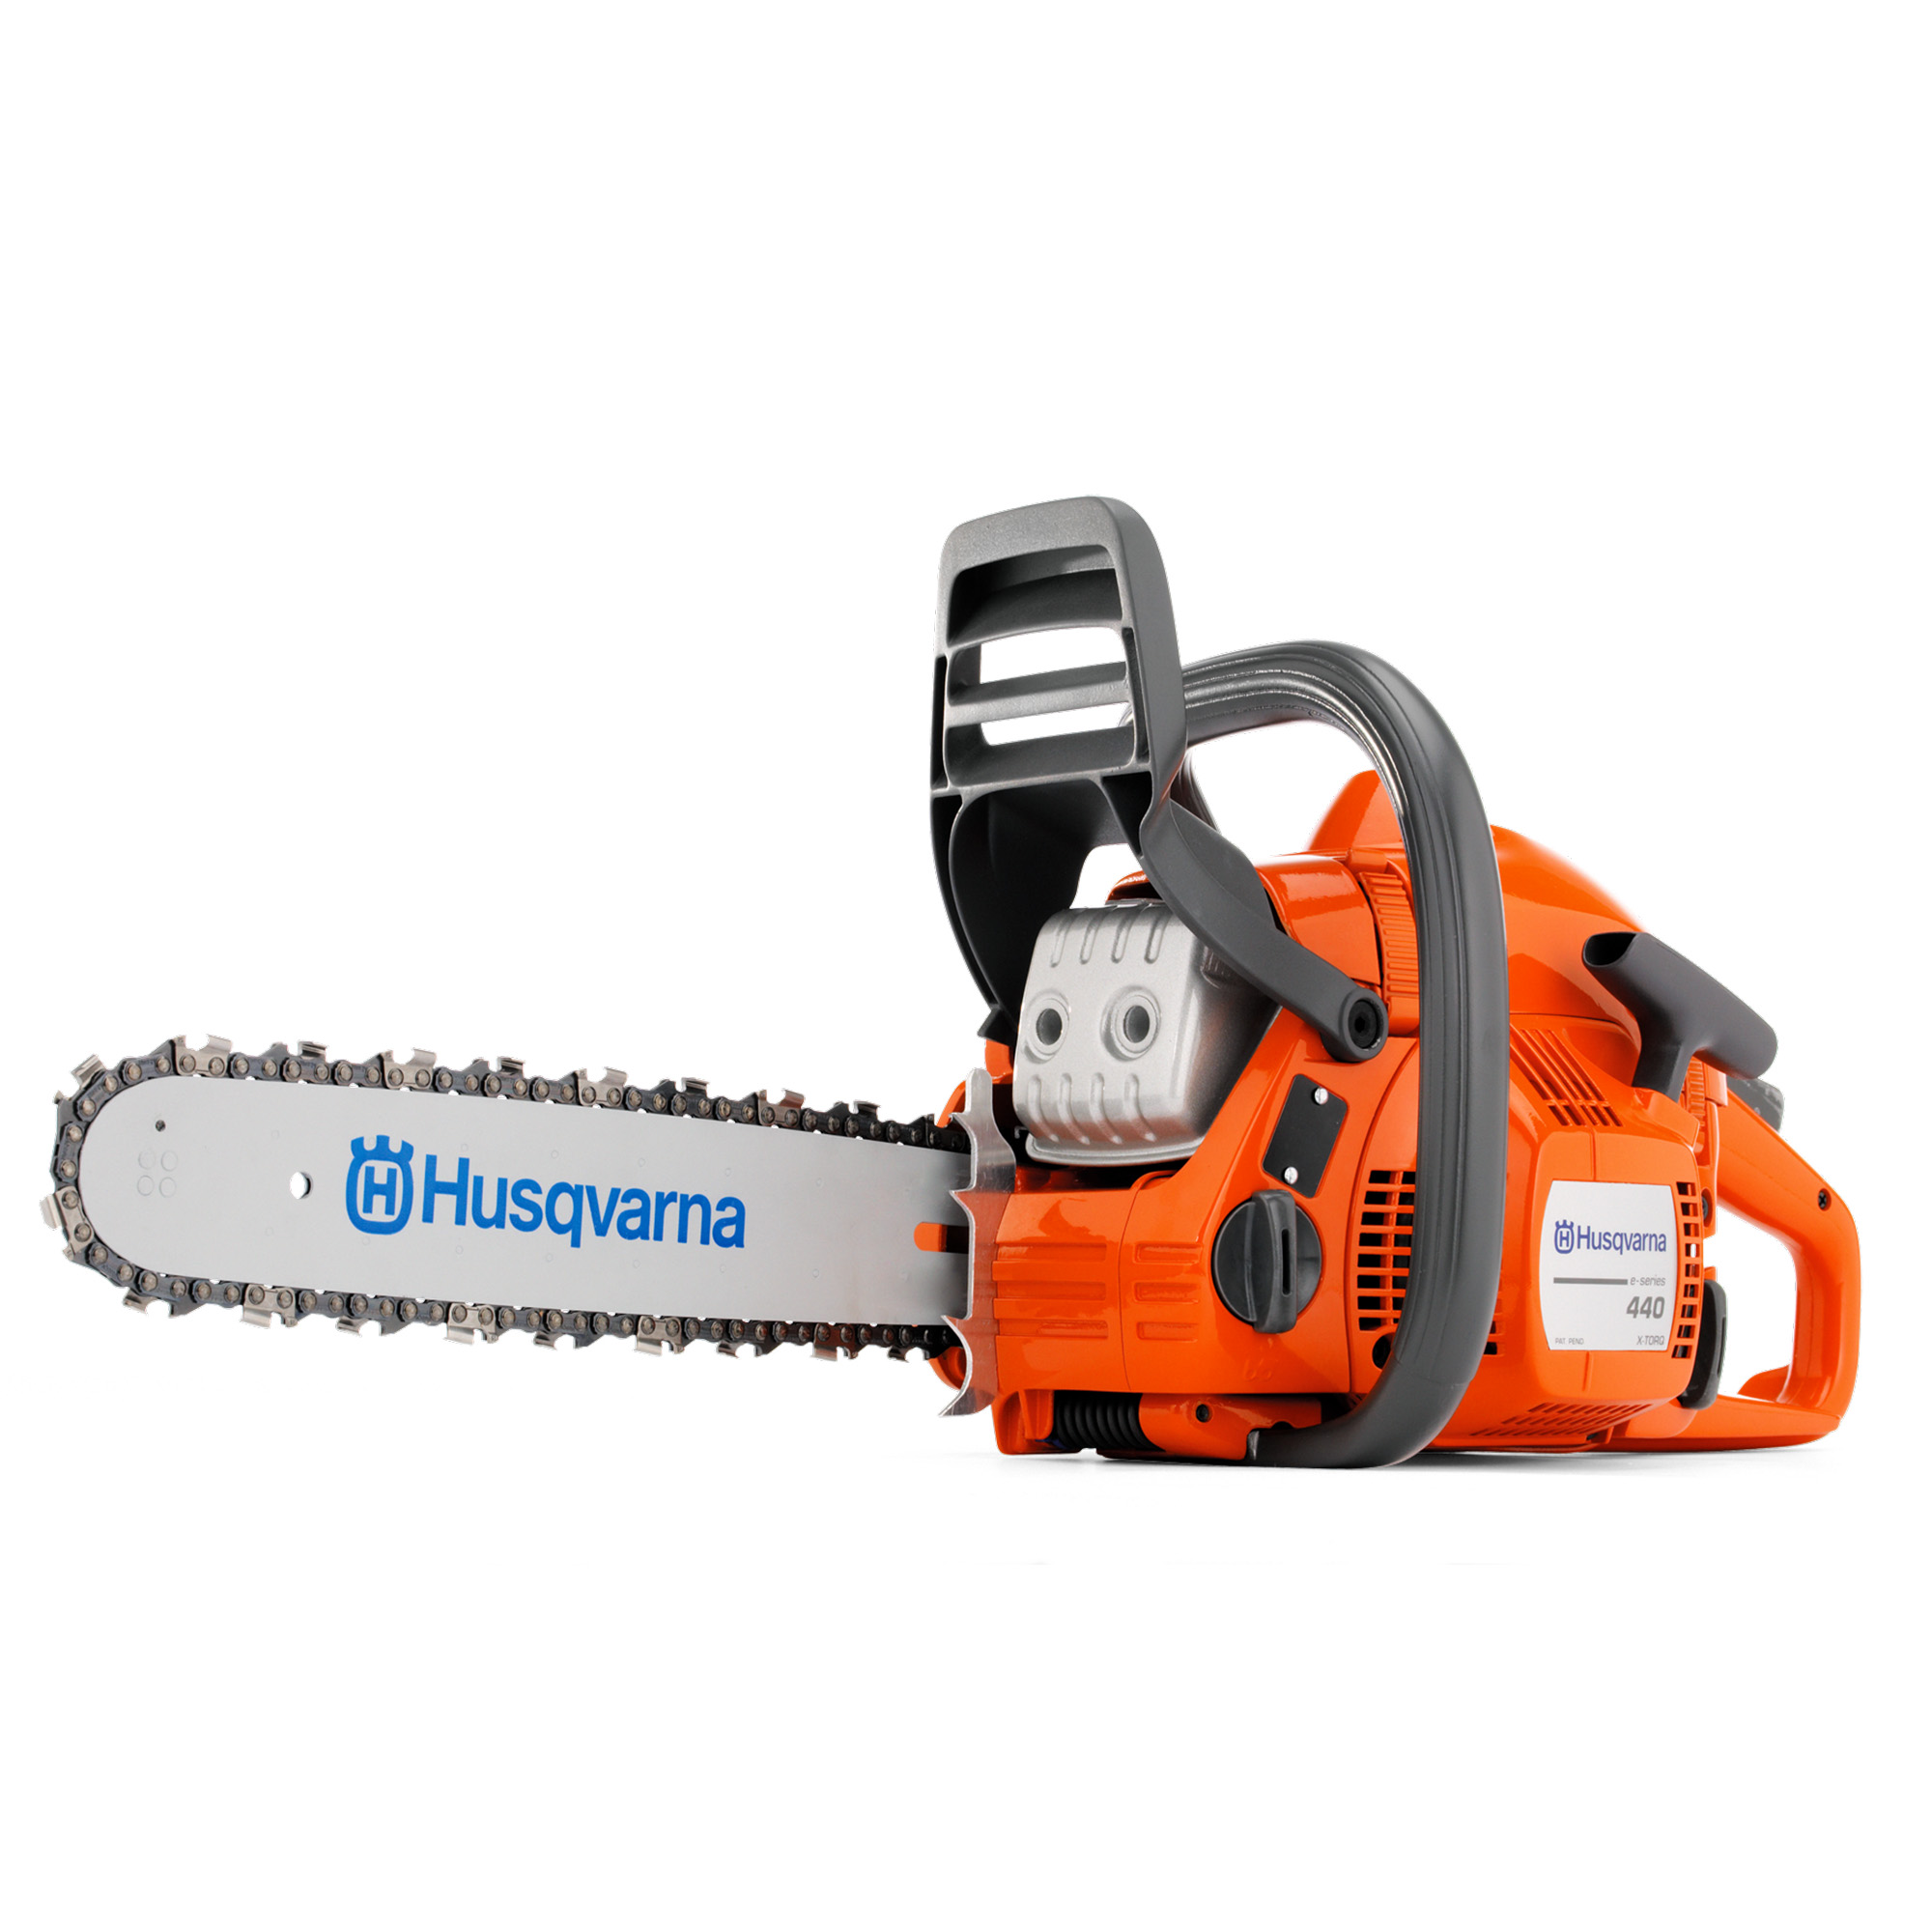 Husqvarna 440E 18 Inch 40.9cc 2.4 HP 2 Cycle Gas Powered Chainsaw with X-Torq